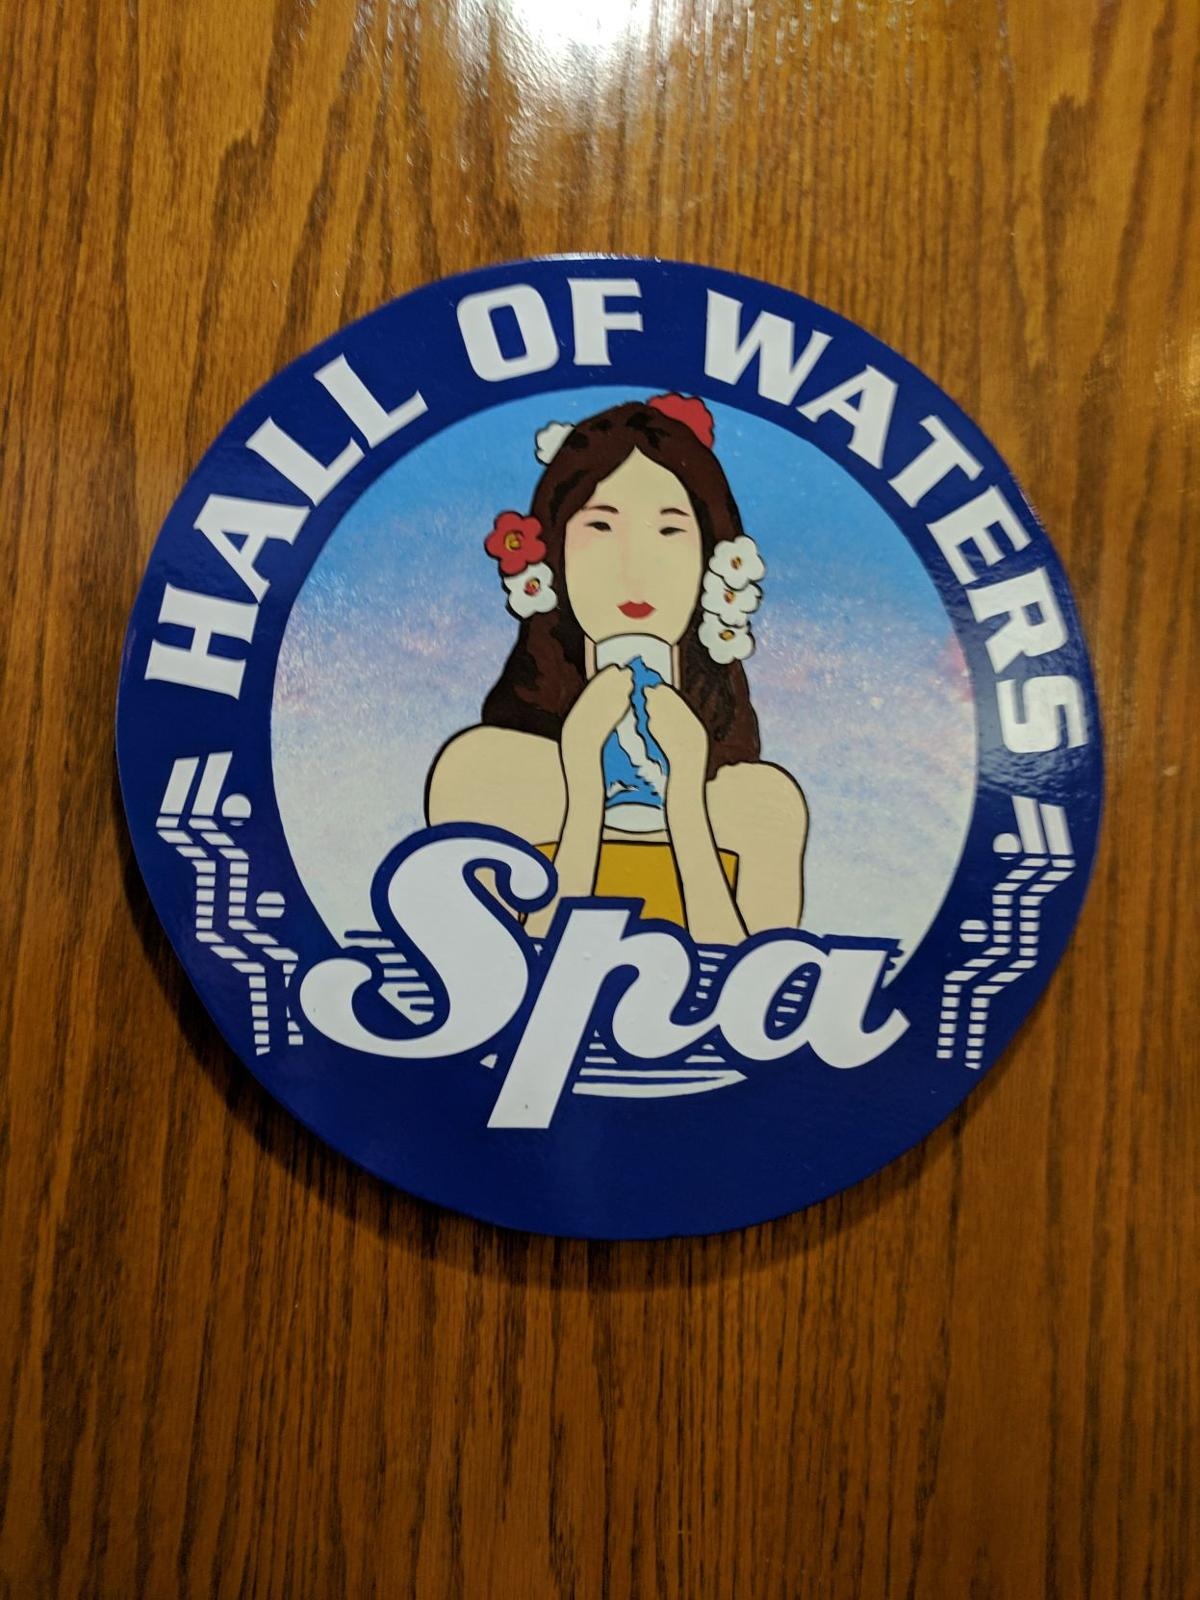 Hall of Waters sign